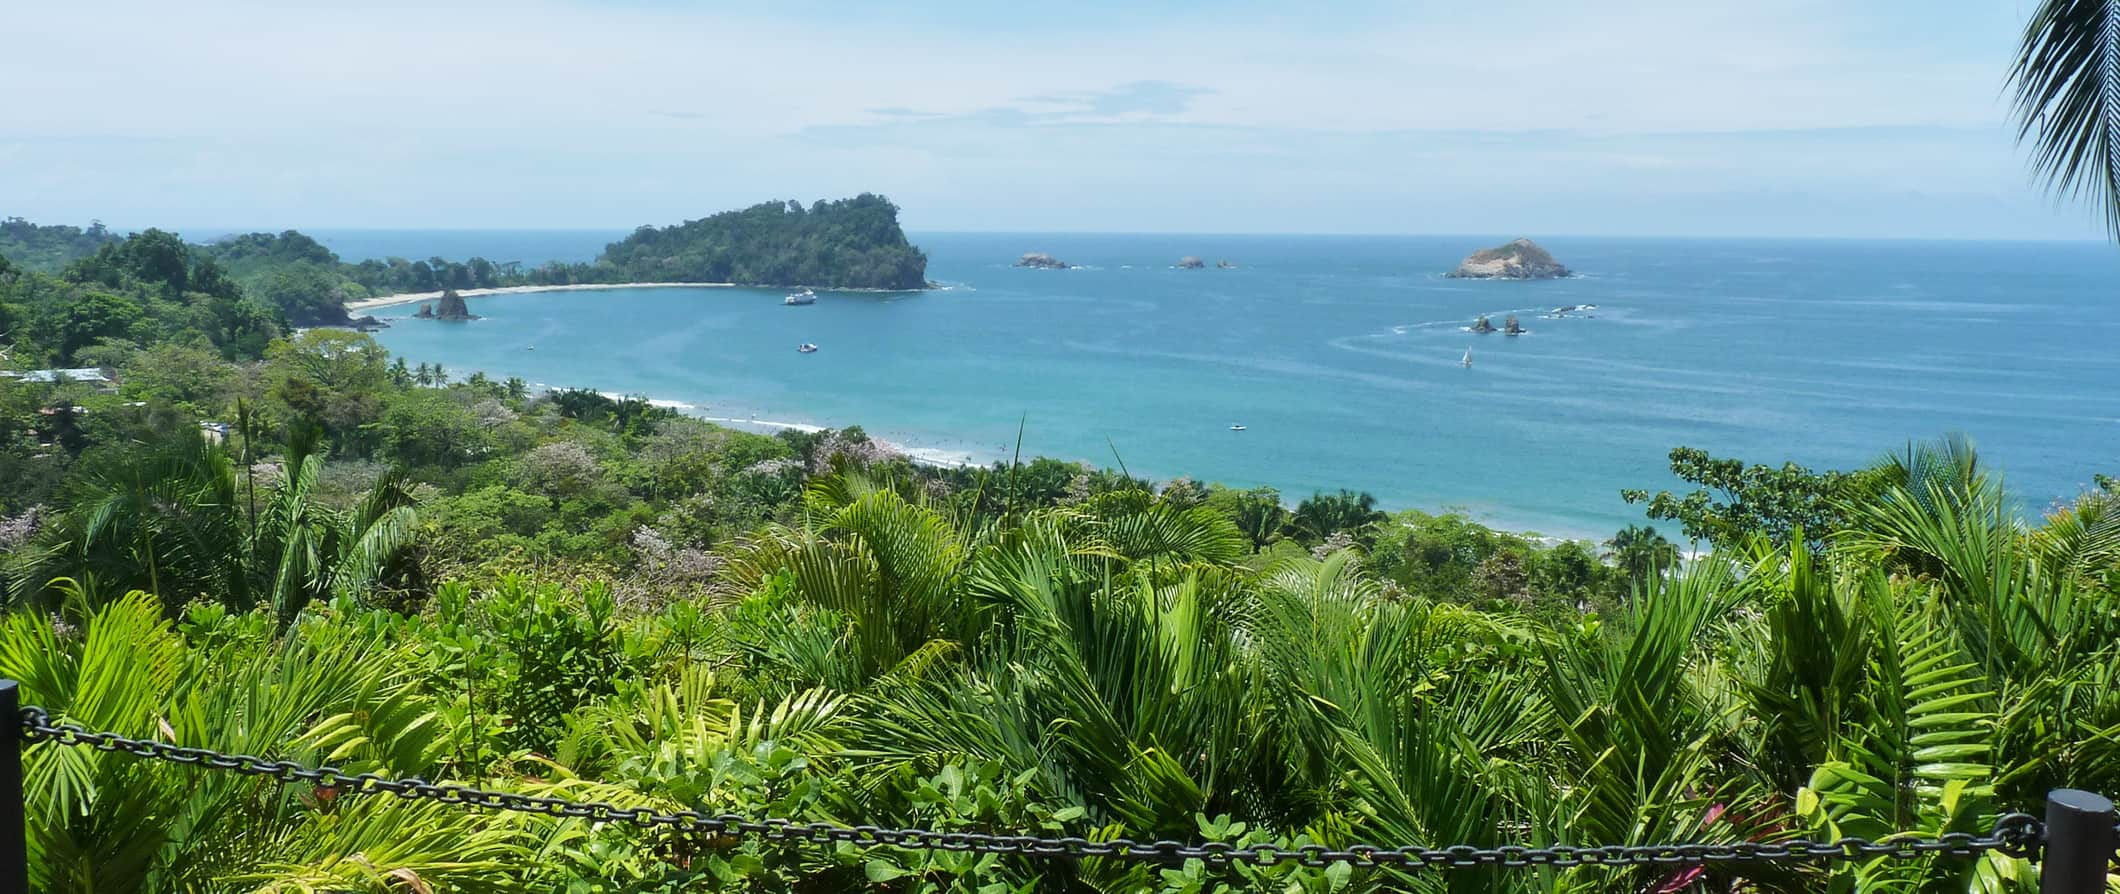 a beach scene in manuel antonio, costa rica